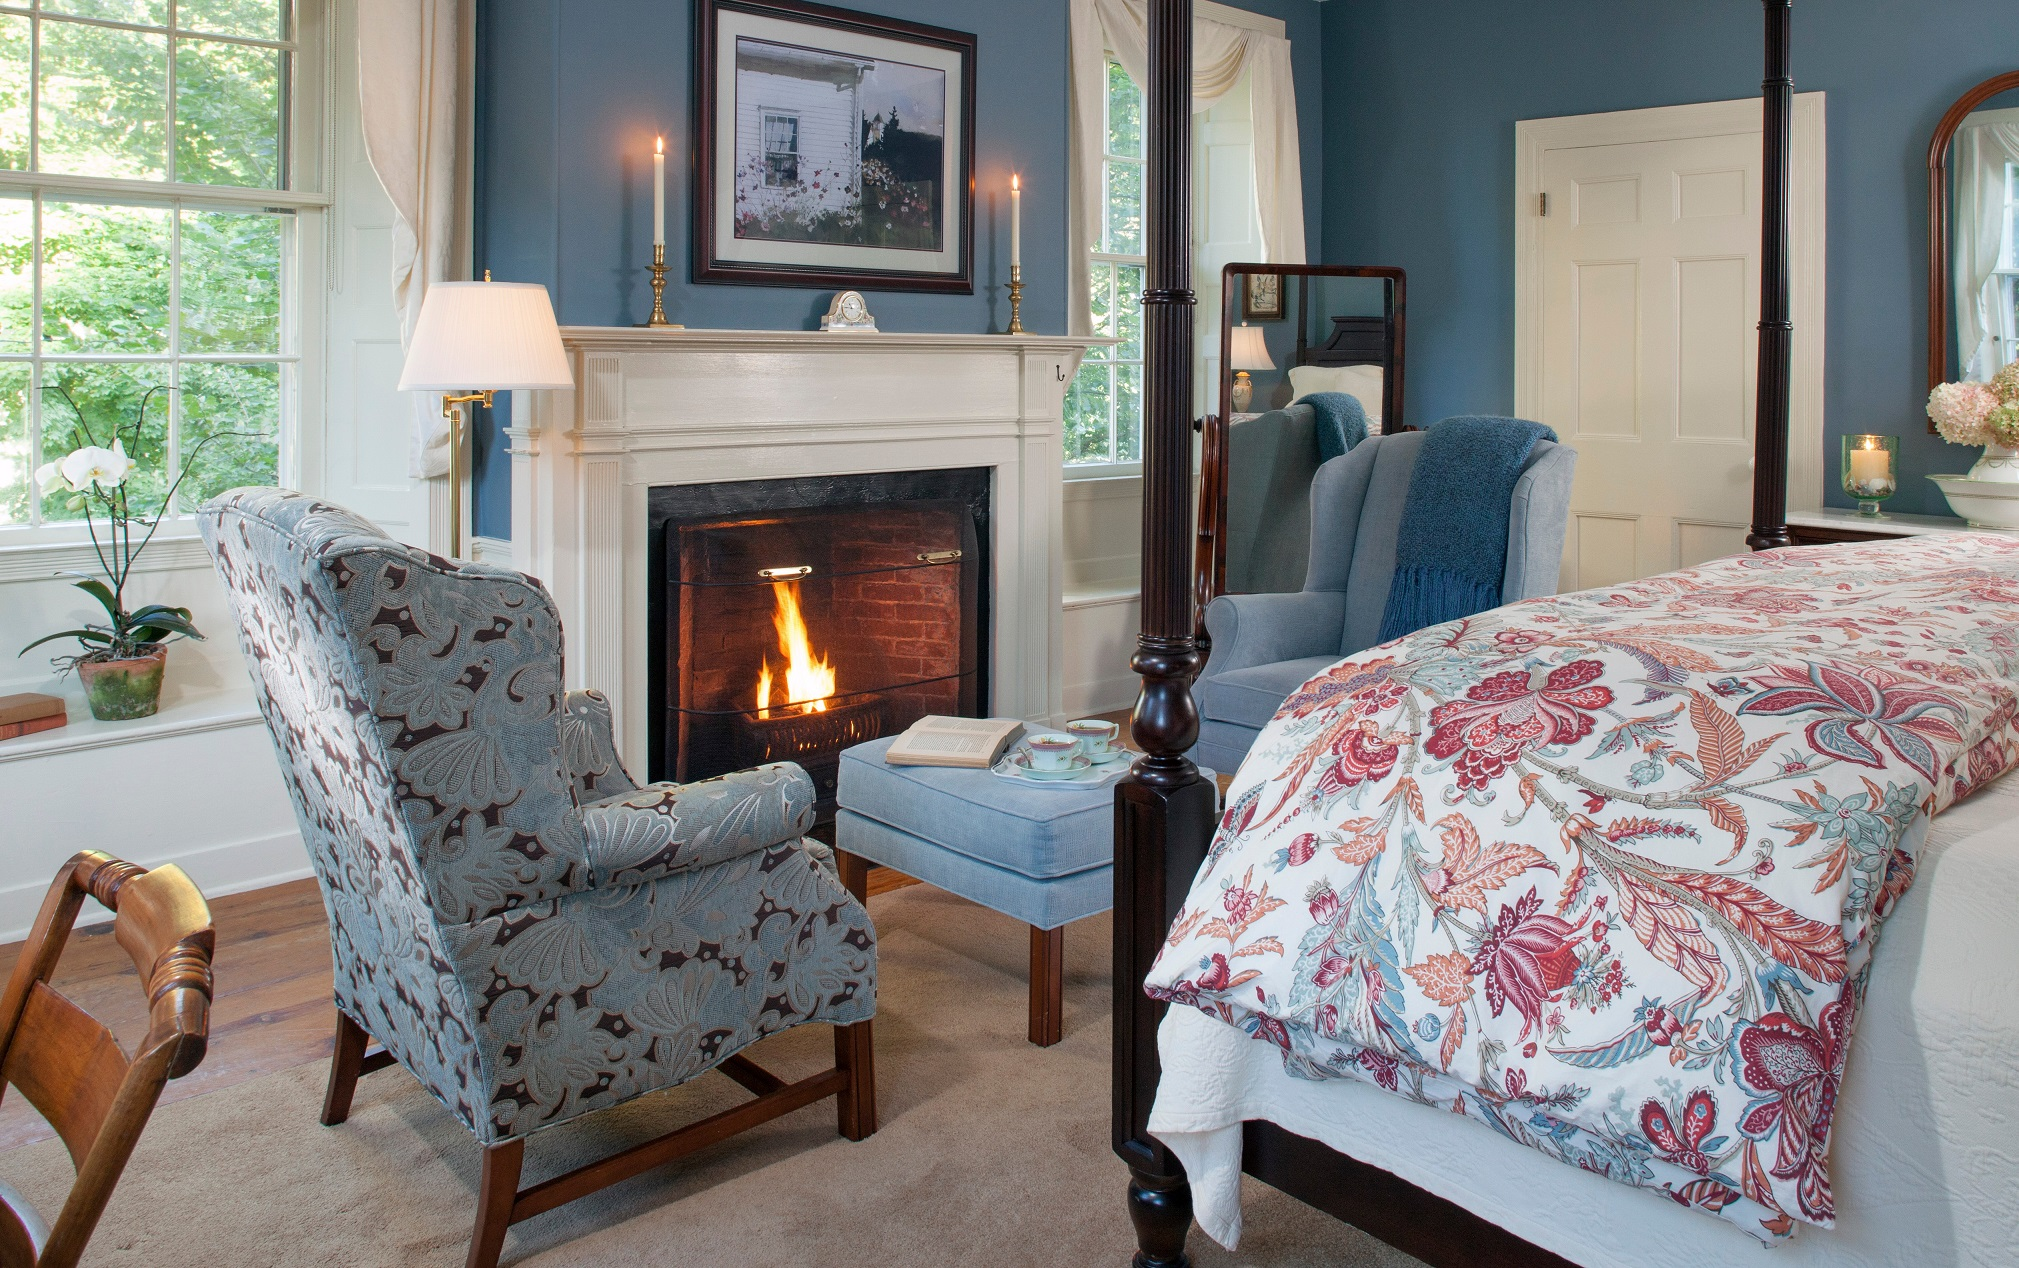 One of the favorite things to do during the off season is sit in front of the fire with a good book and a cup of tea. Photo taken at Captain Jefferds Inn.